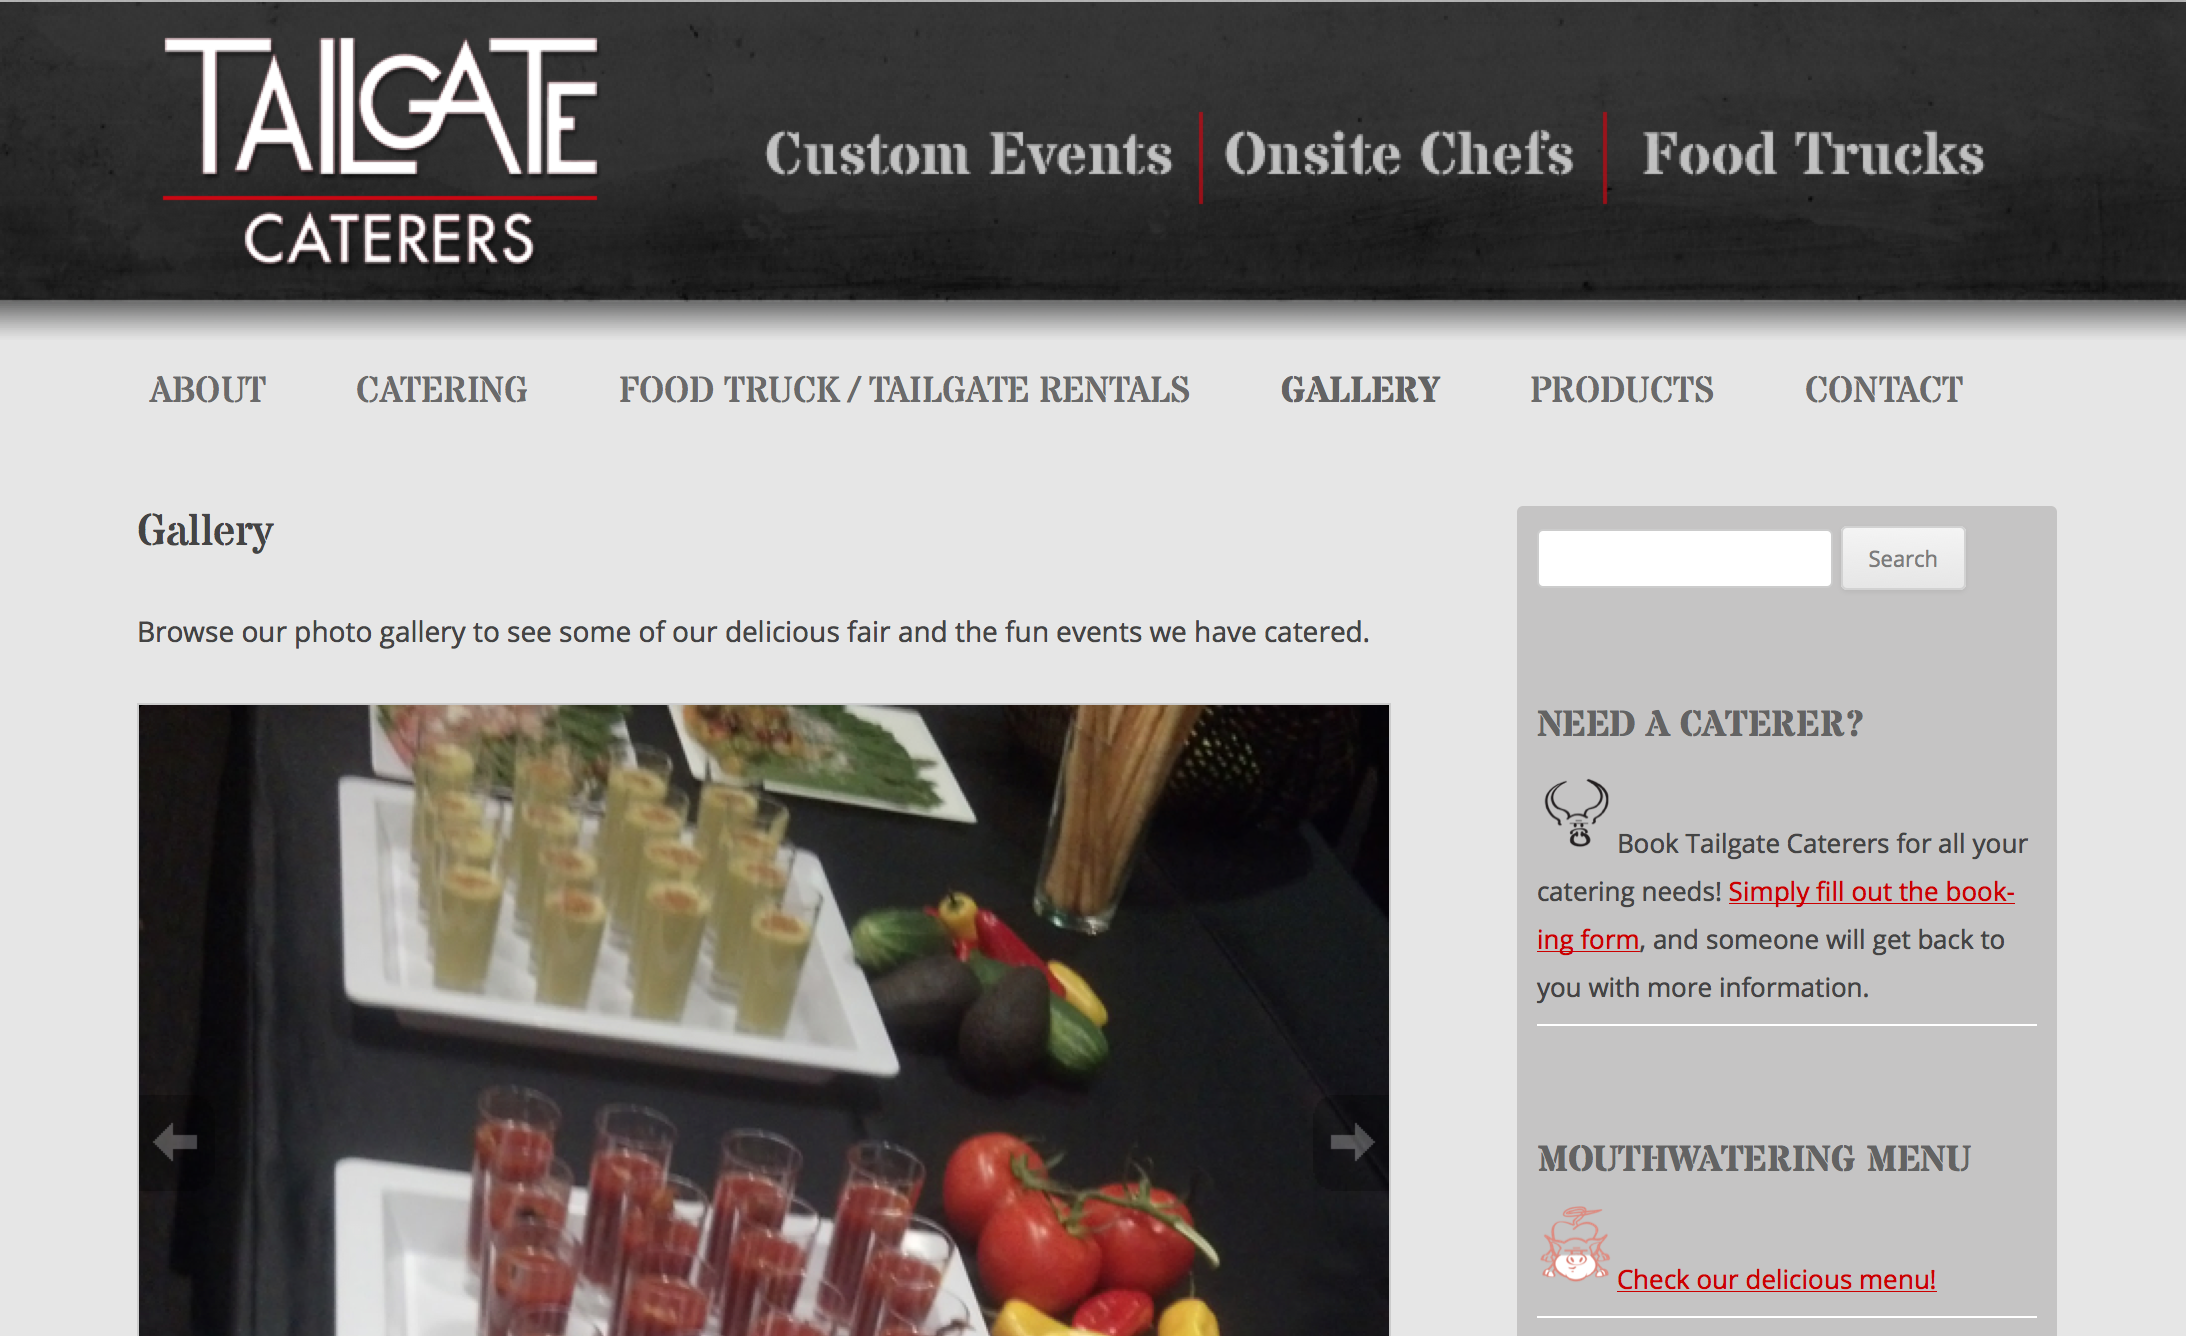 Tailgate Caterers